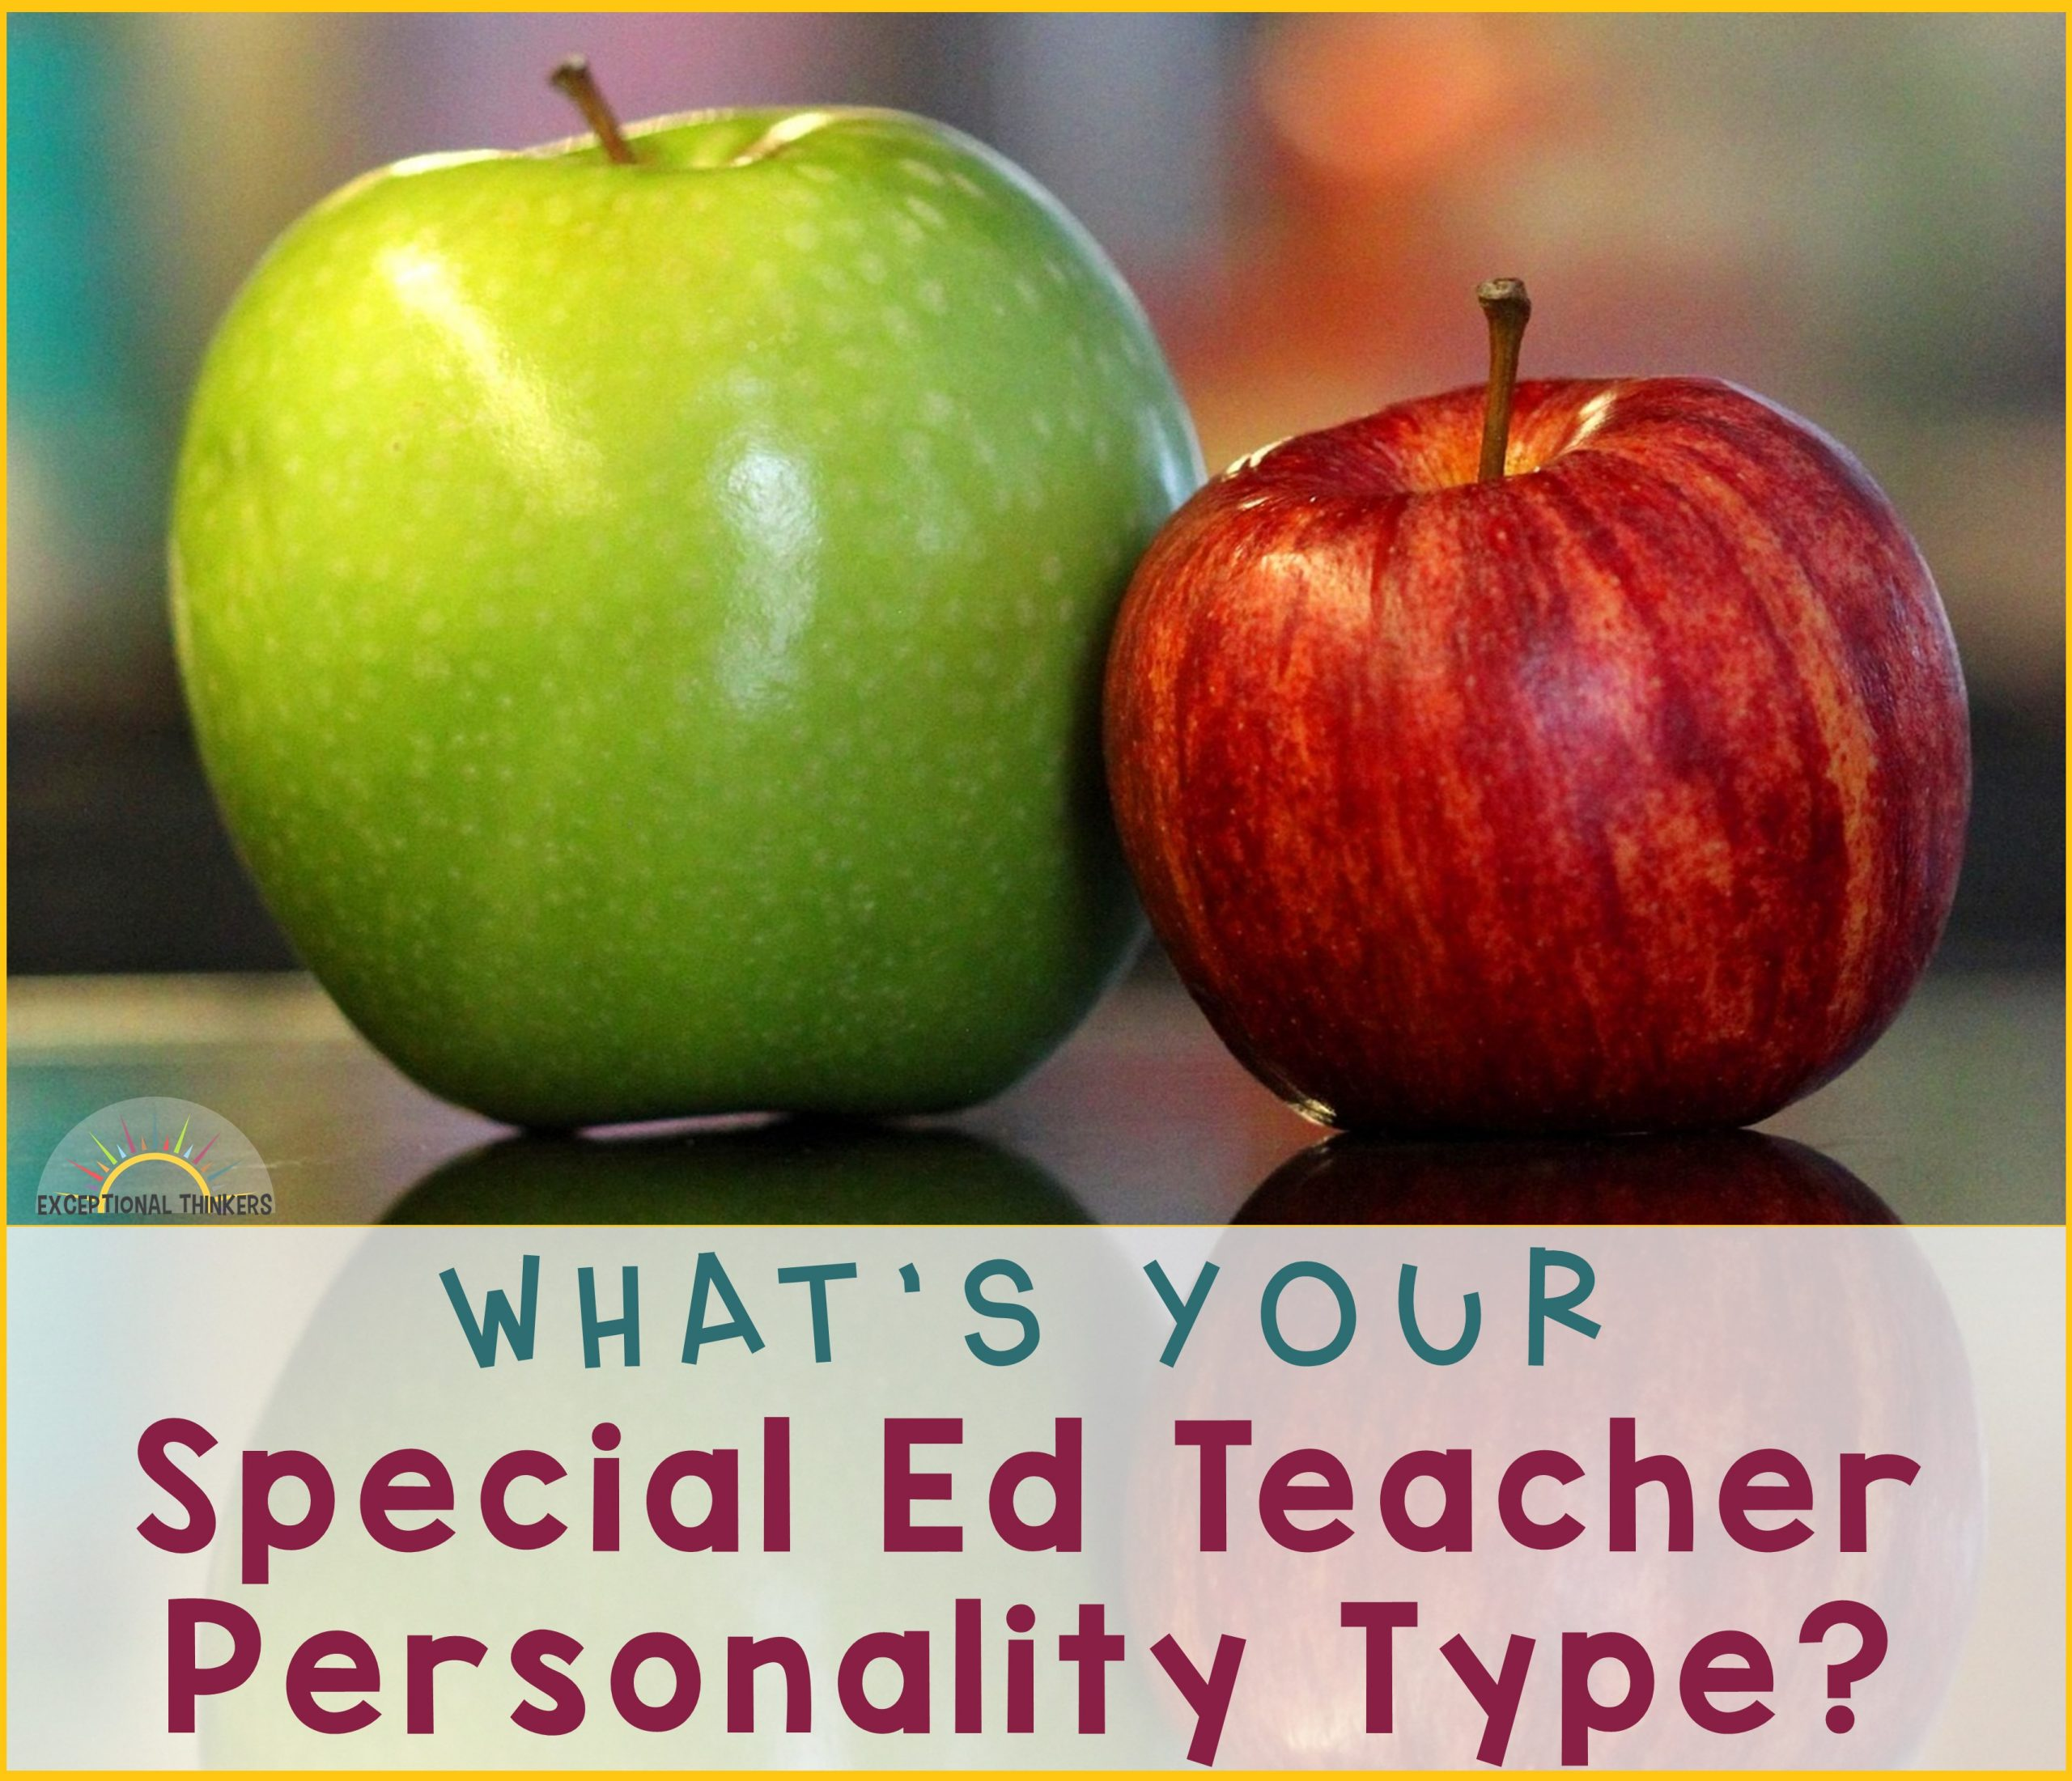 What Type of Special Ed Teacher Are You?